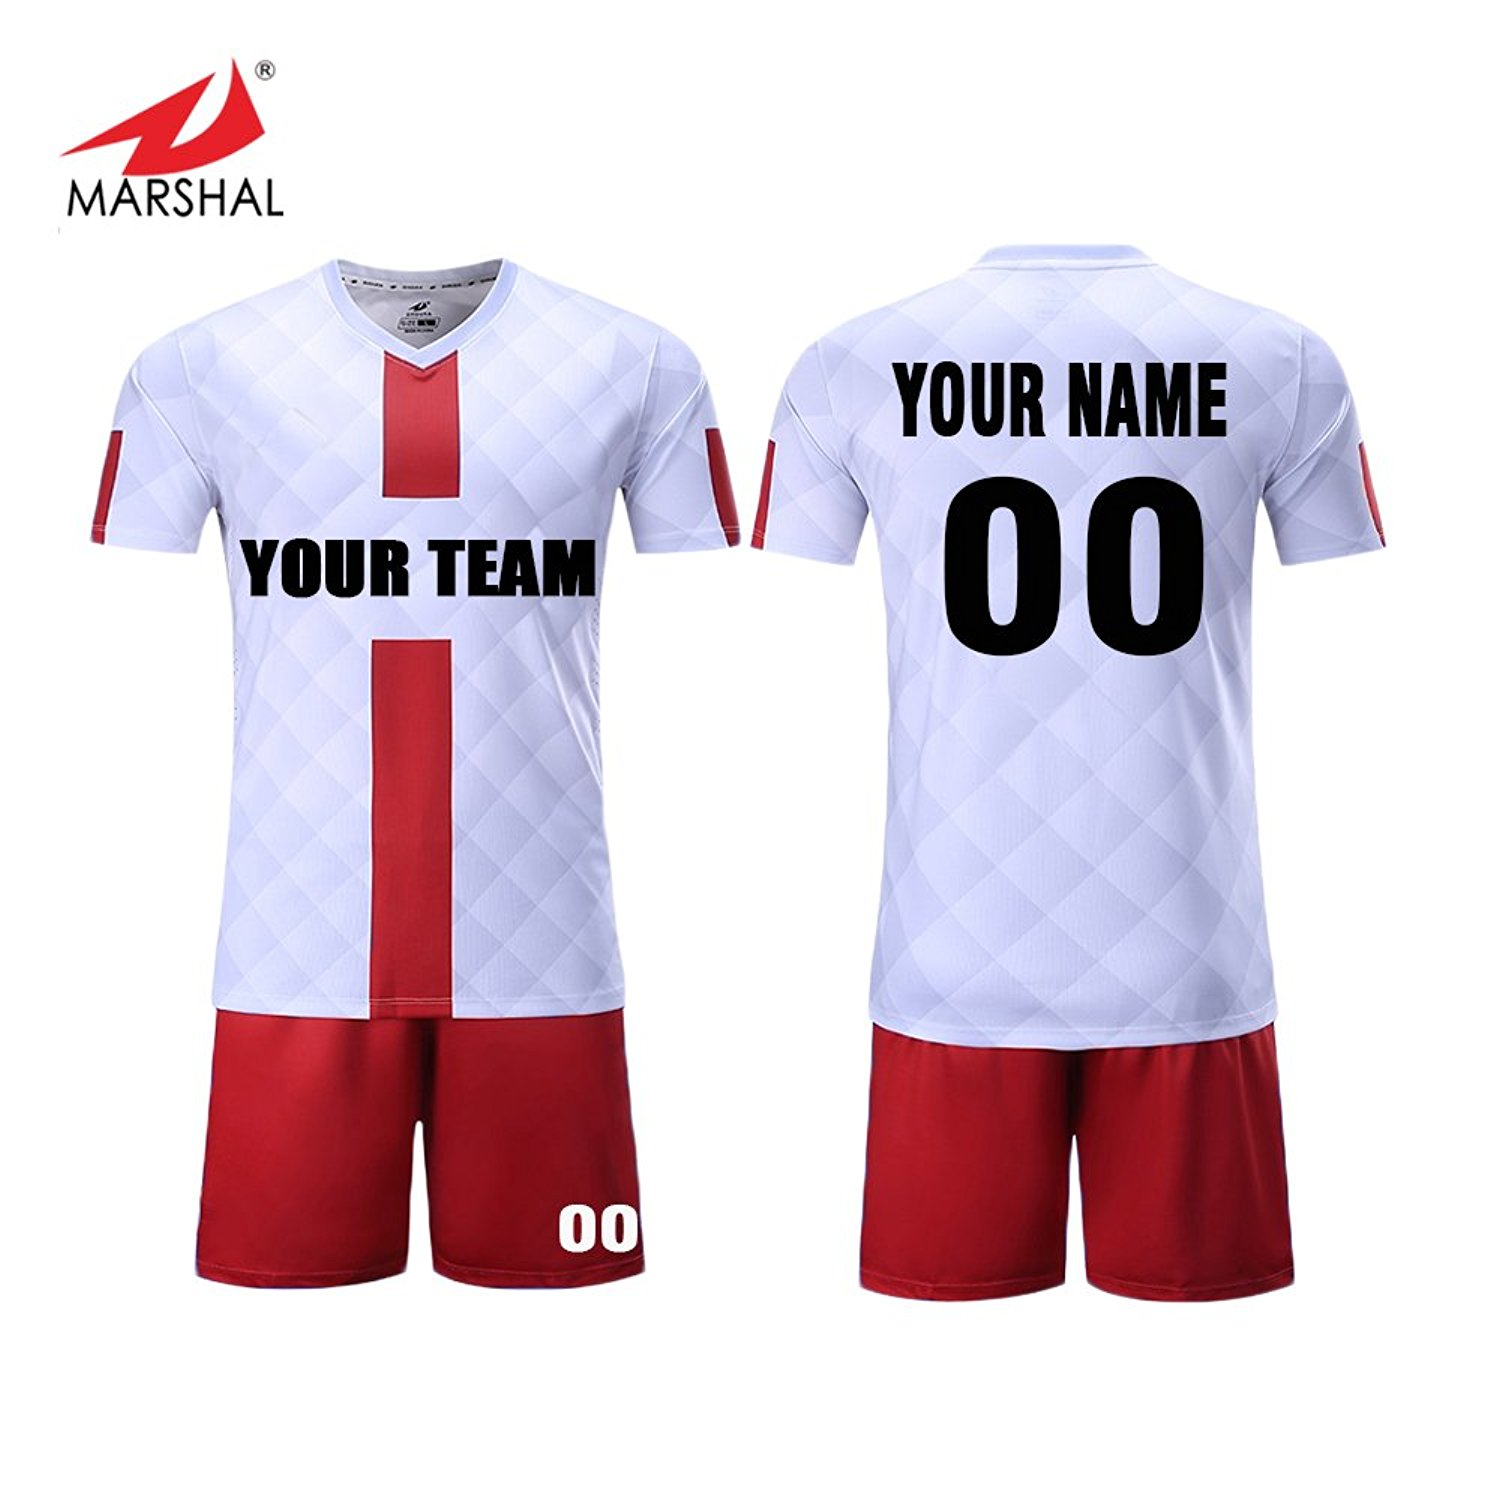 e64f3cd0 Get Quotations · Marshal Jersey 4 Colors Custom Soccer Jersey Set Full  Sublimation Sportswear Custom Men's Uniform Suit,